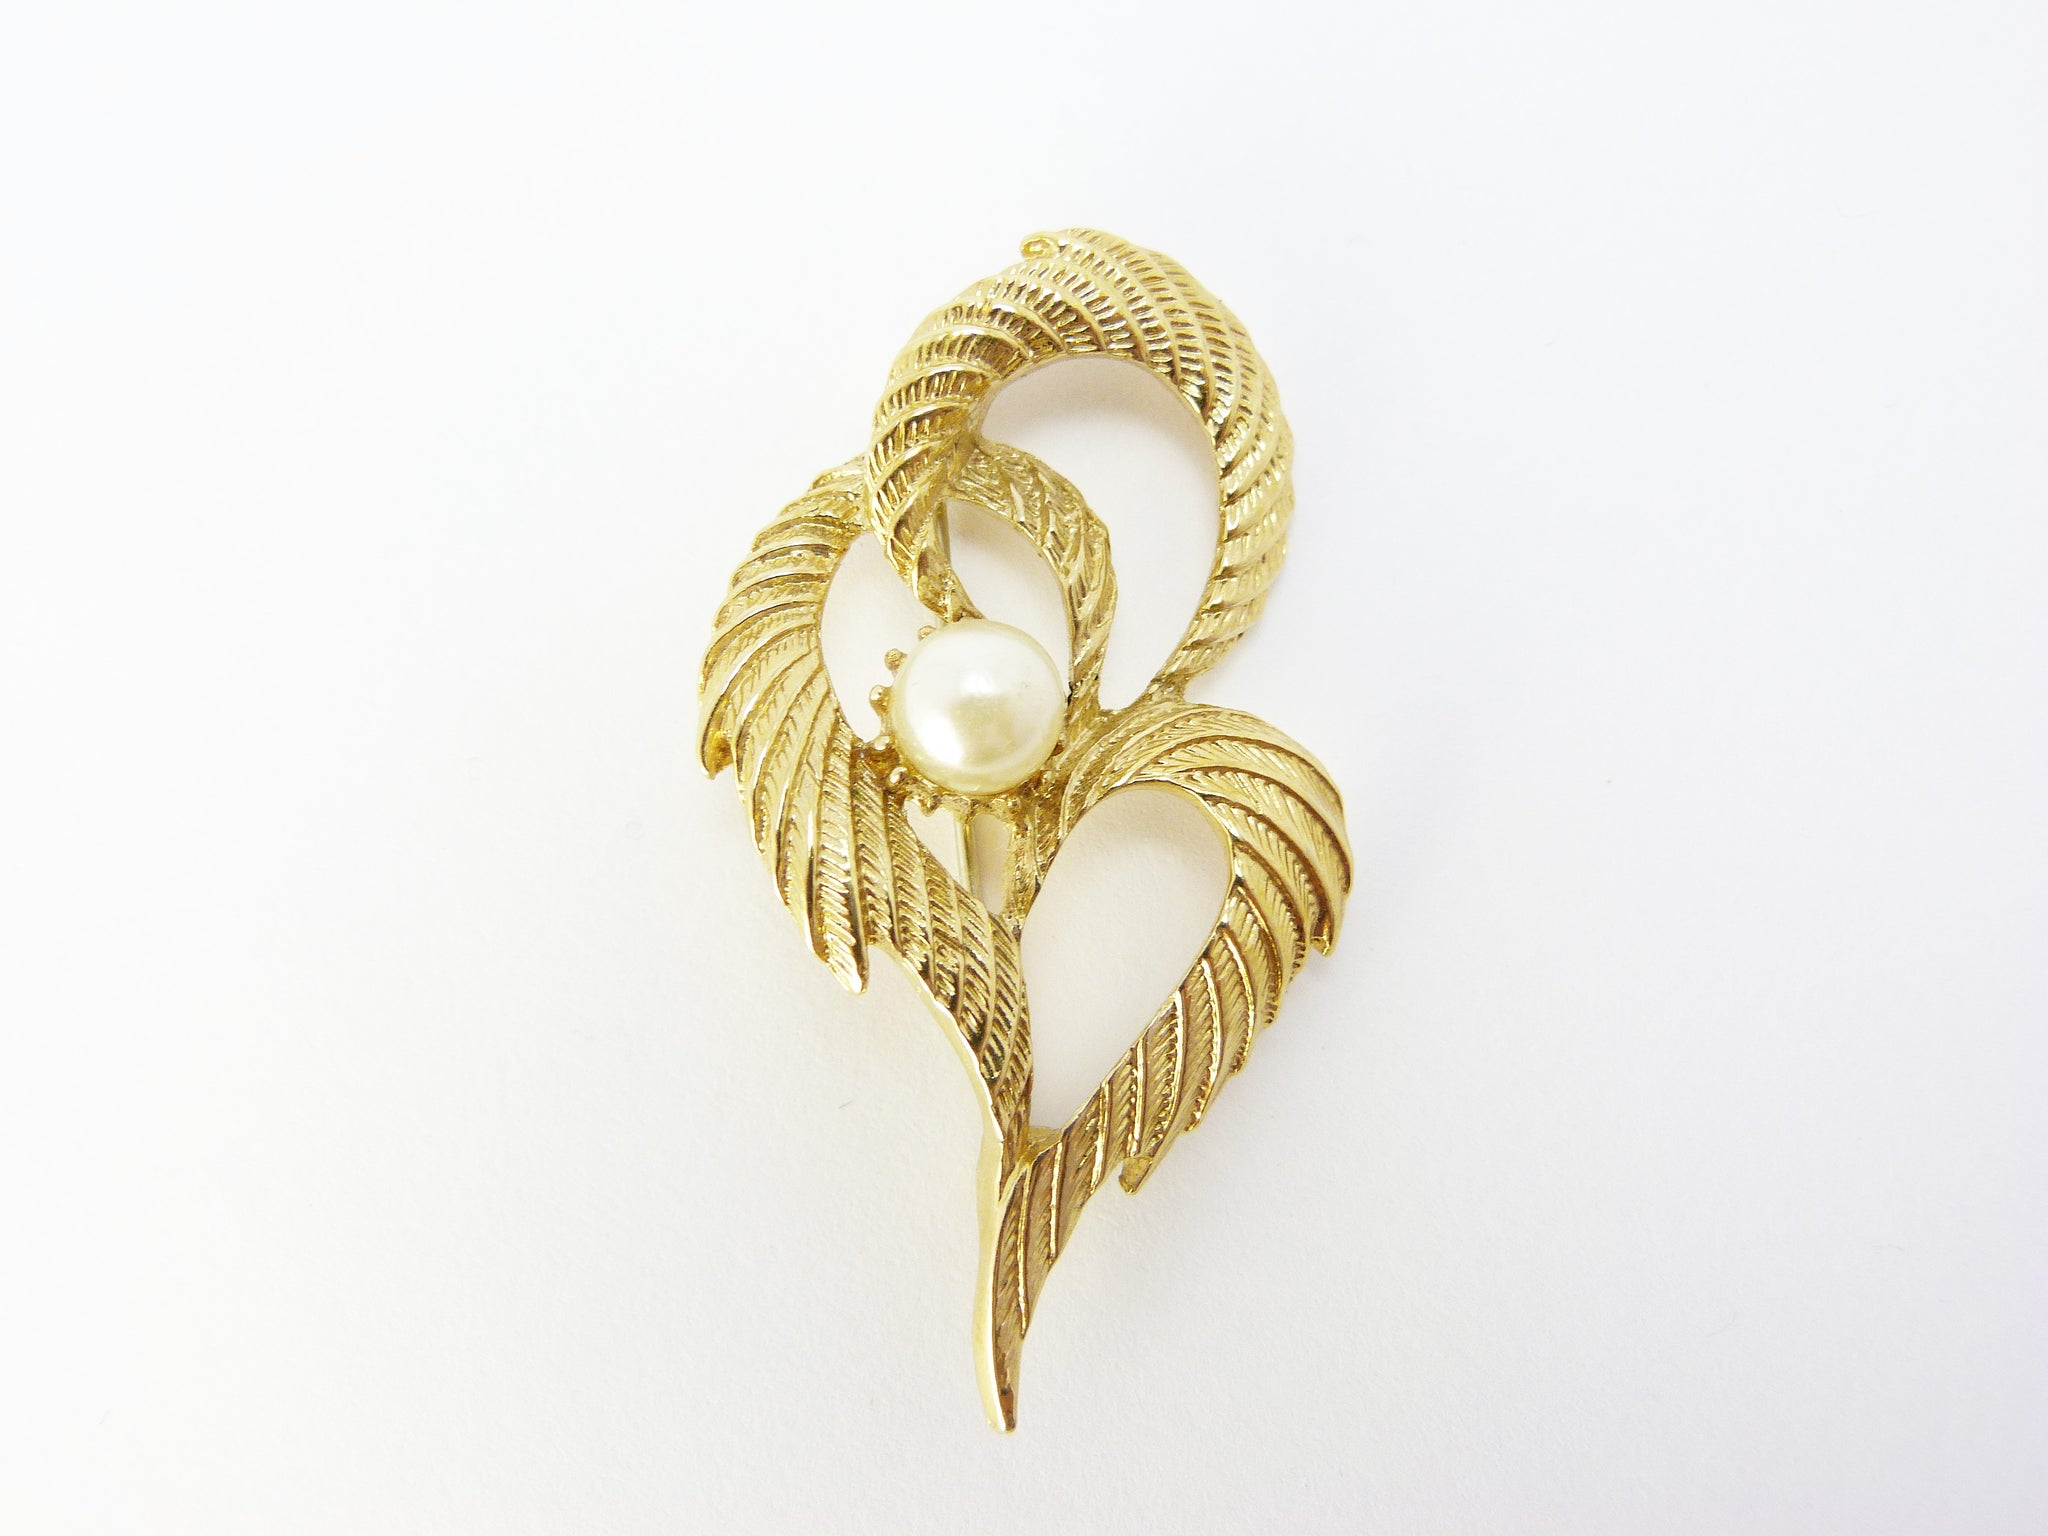 Vintage Abstract Modernist Gold Tone & Faux Pearl Spray Brooch